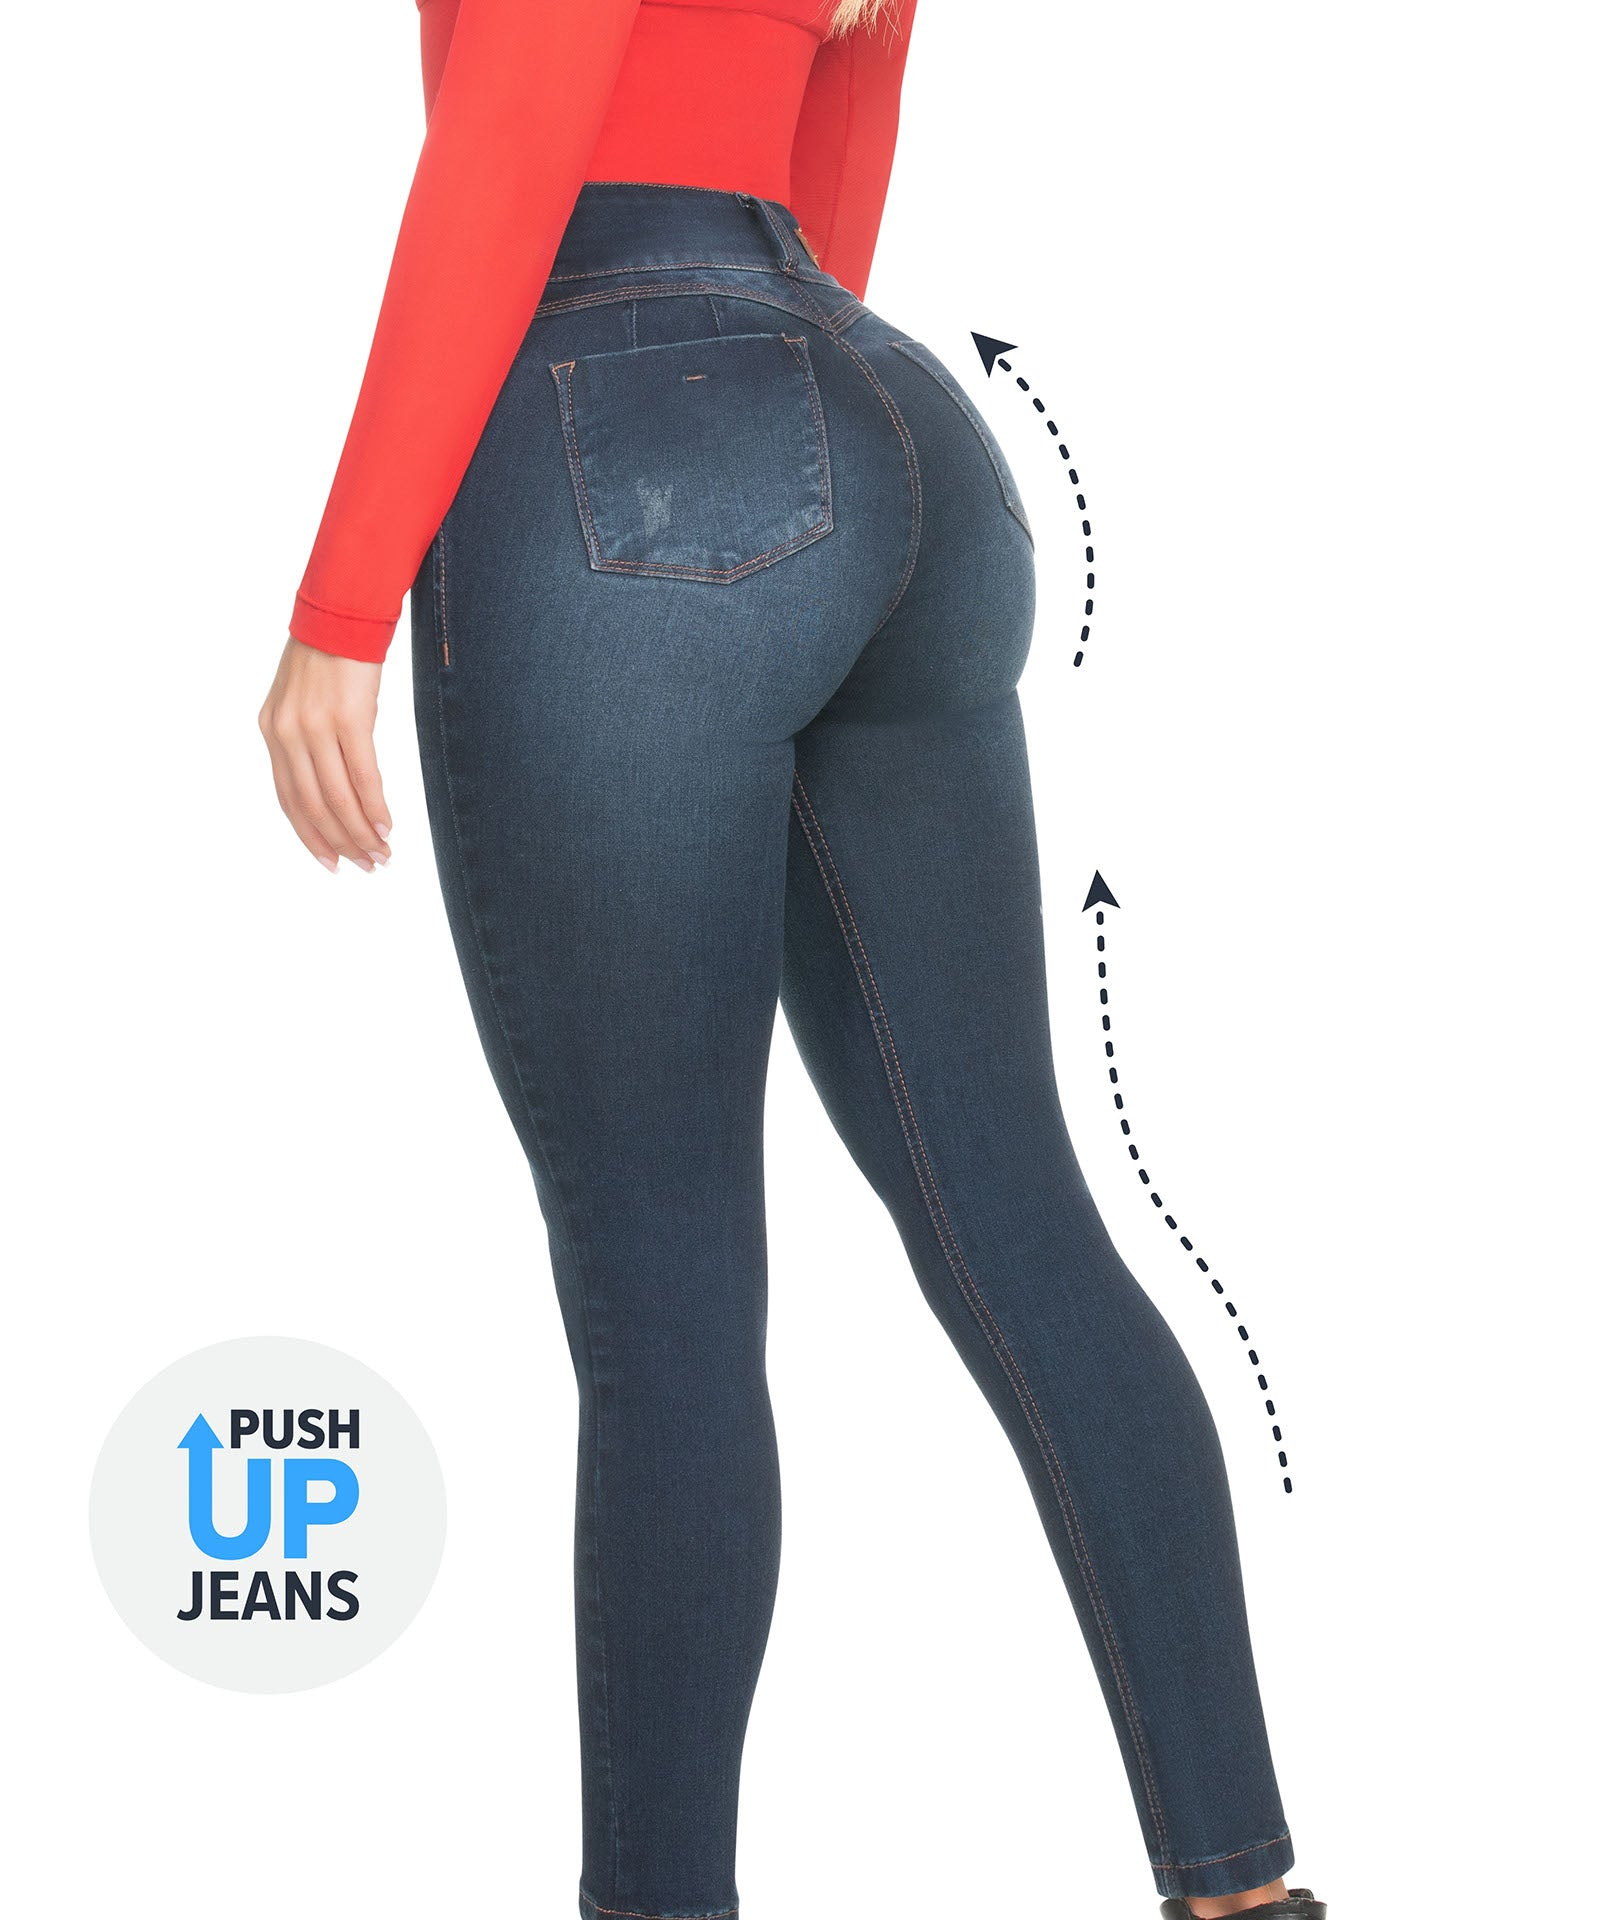 2033 - Push Up Jean by CYSM